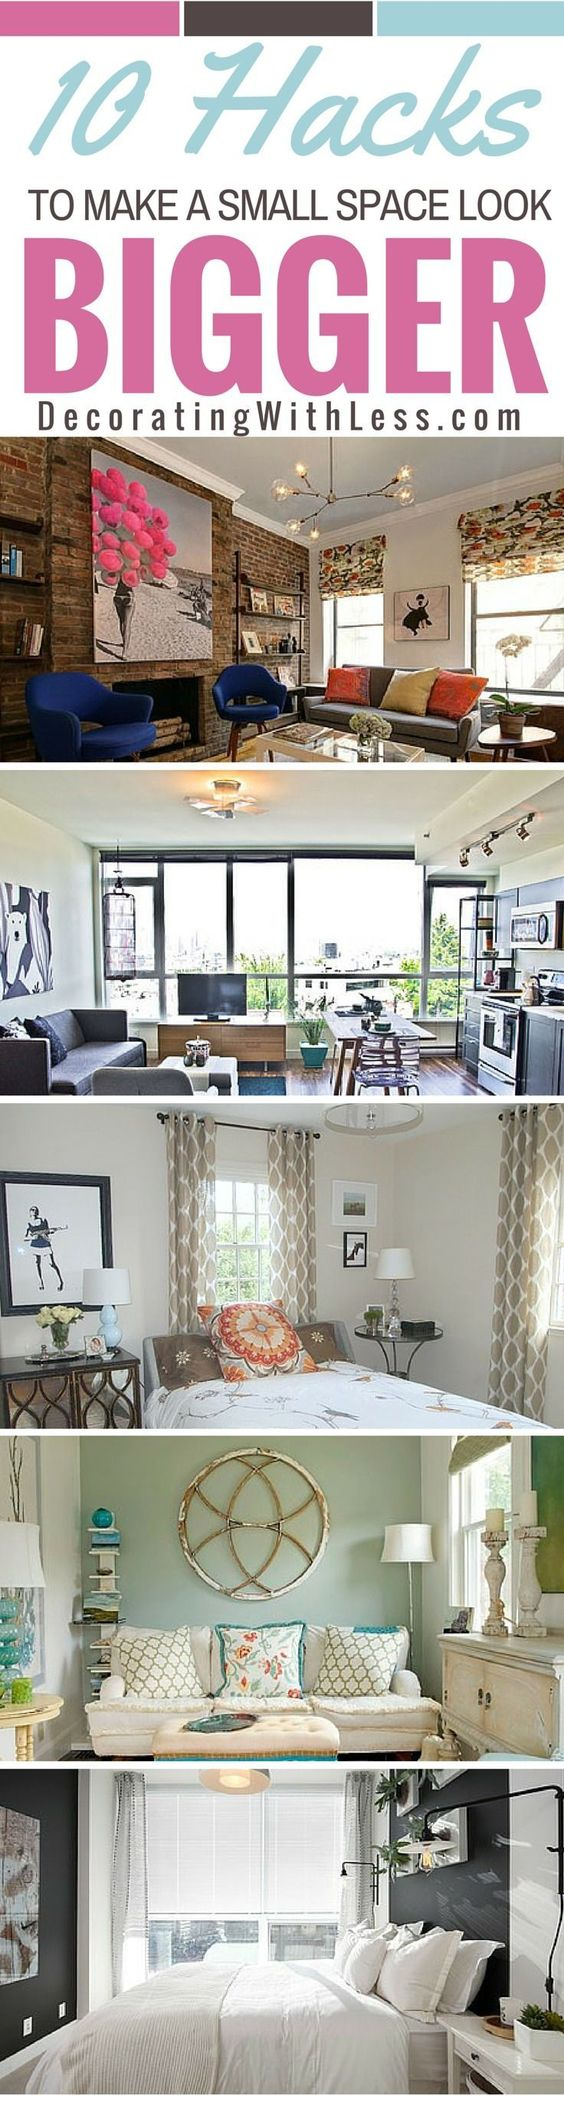 Small spaces hacks and a small on pinterest - How to decorate simple room ...